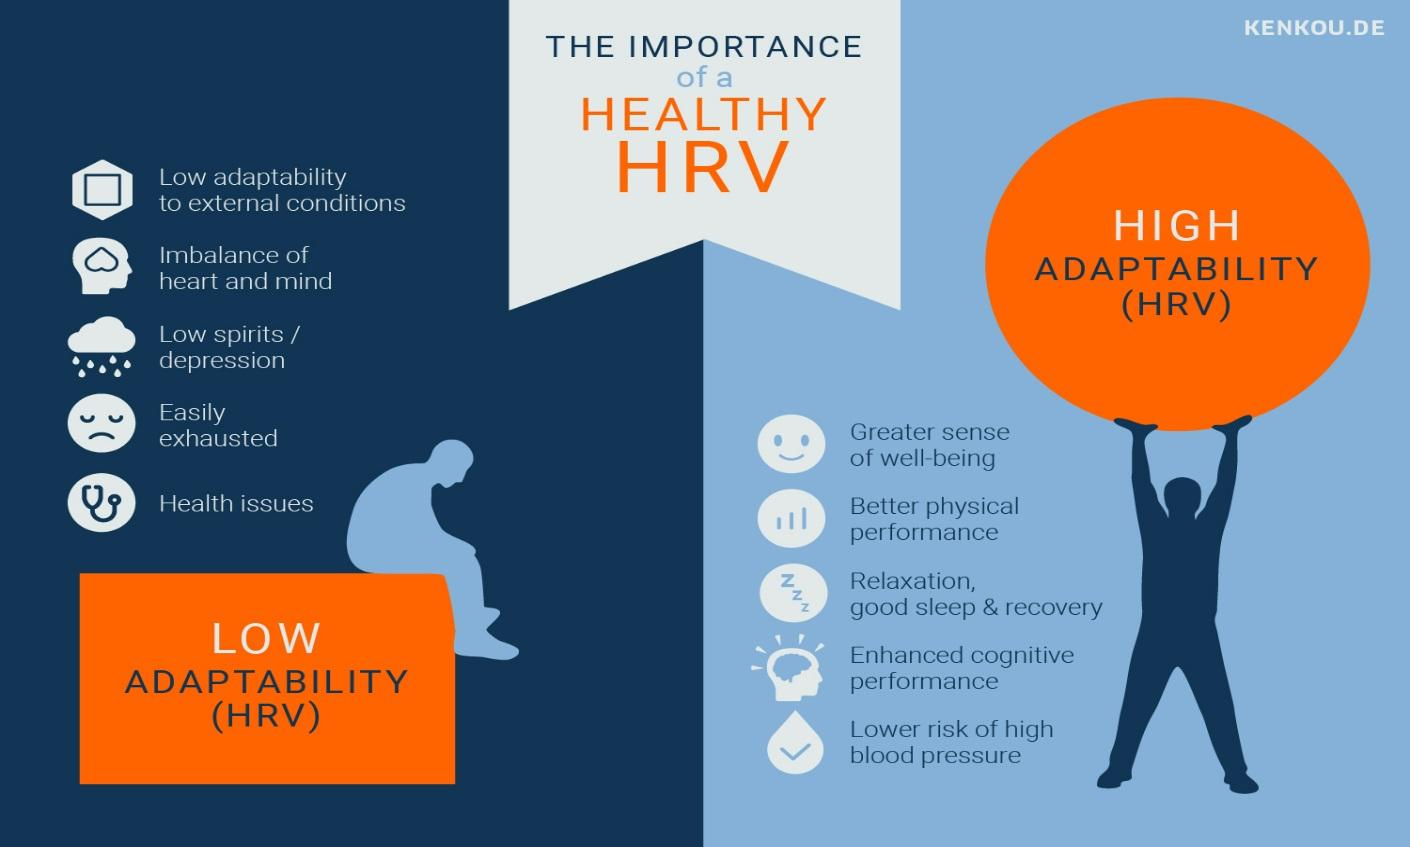 The Importance of a Healthy HRV